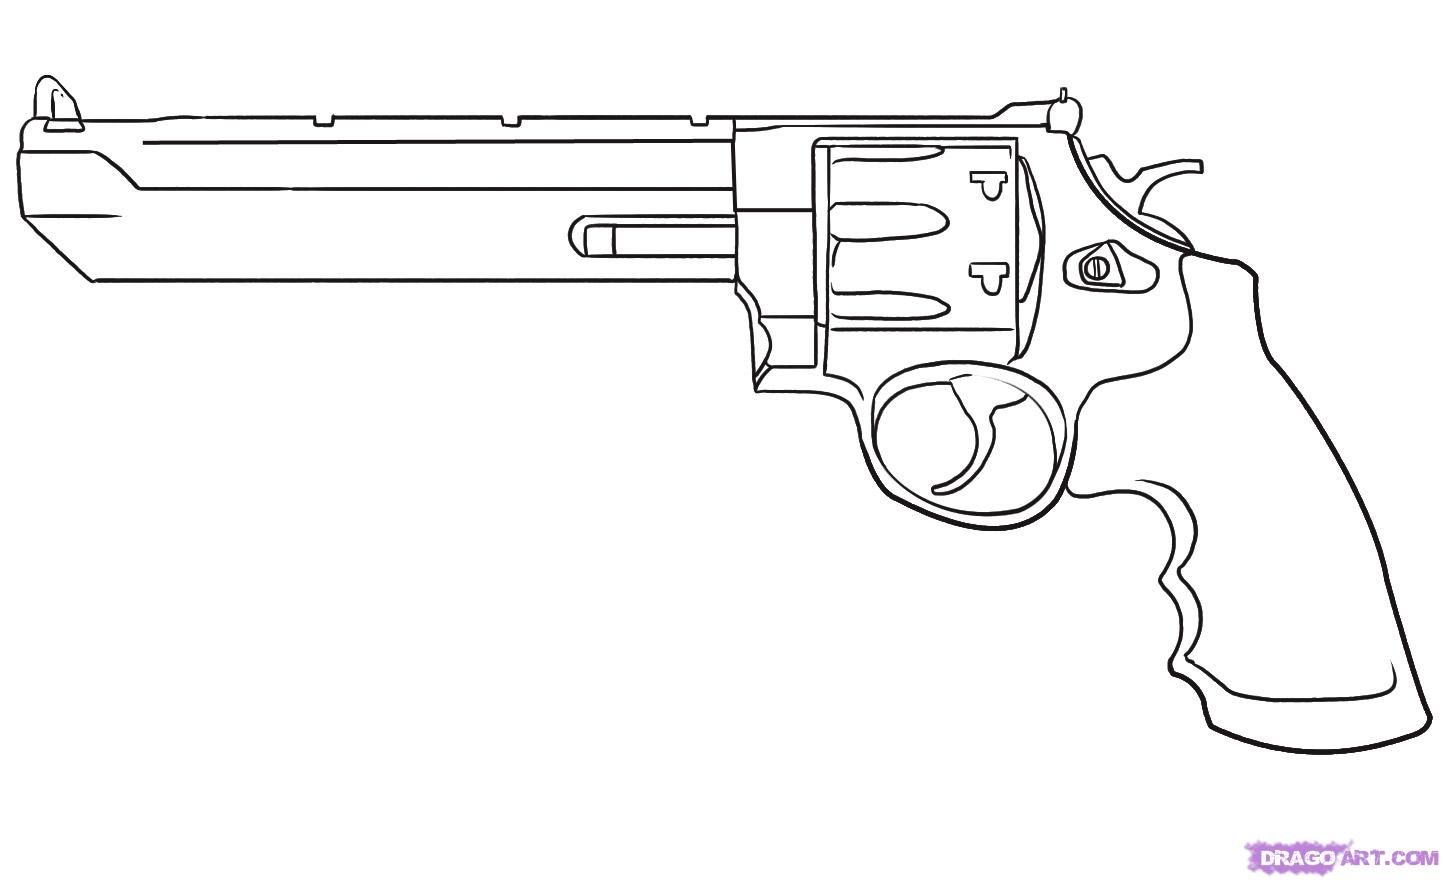 Drawing of colt revolver gun that I could use for ...